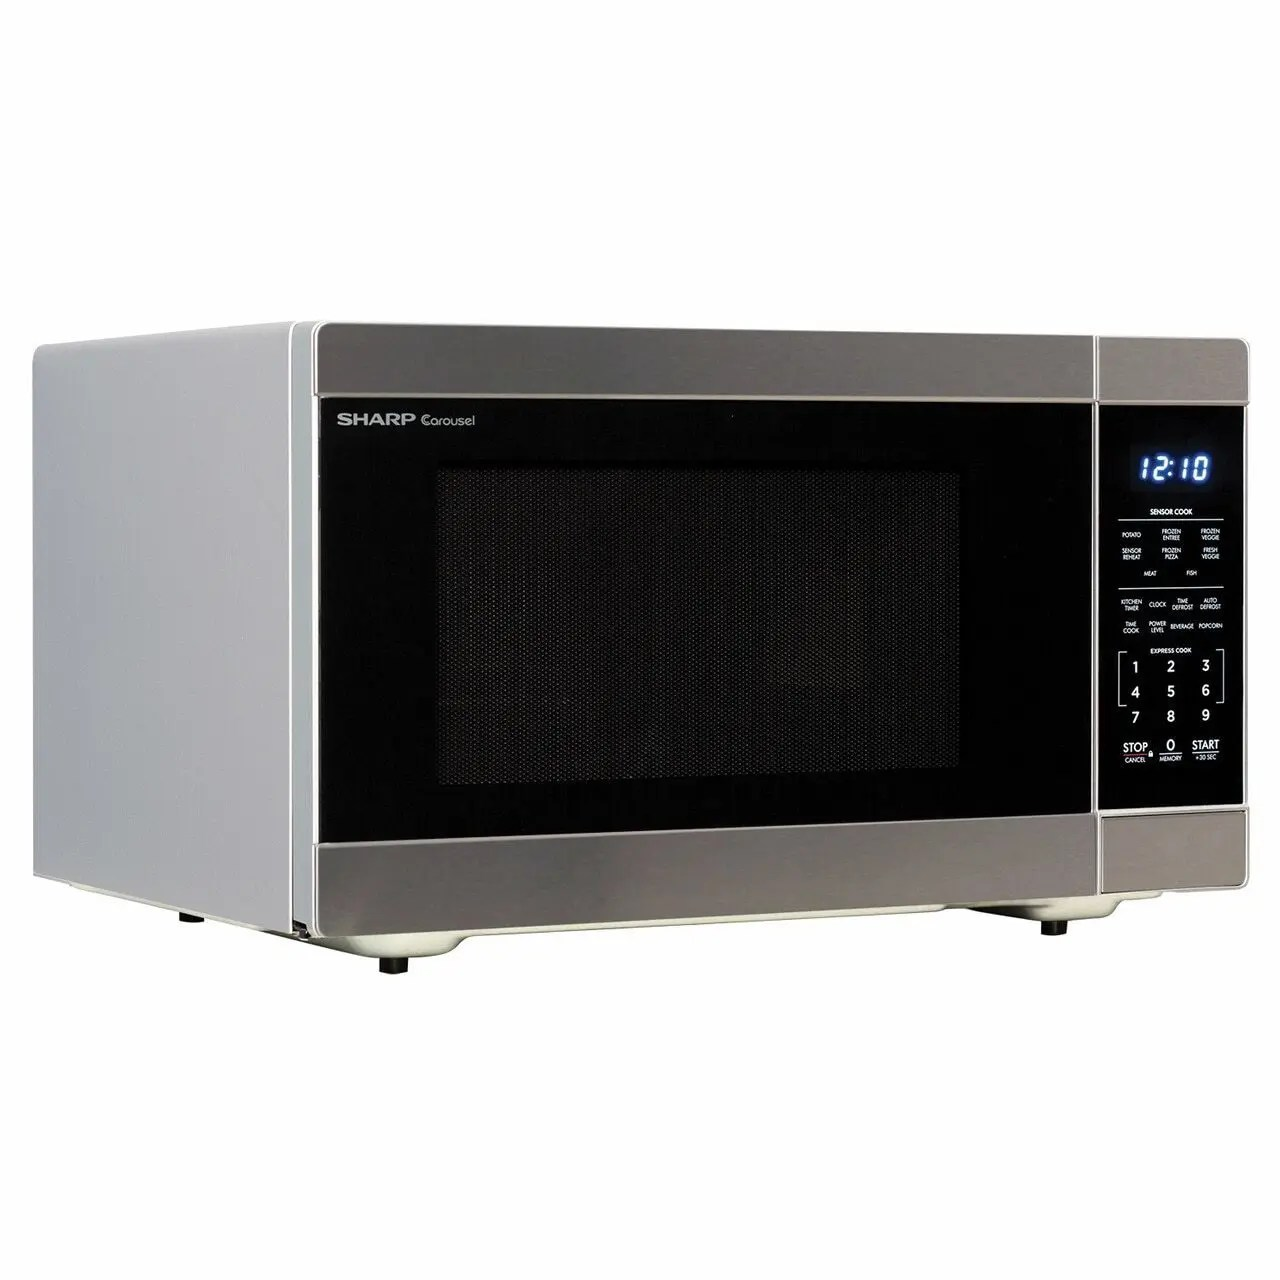 1 6 cu ft 1100w stainless steel countertop microwave oven